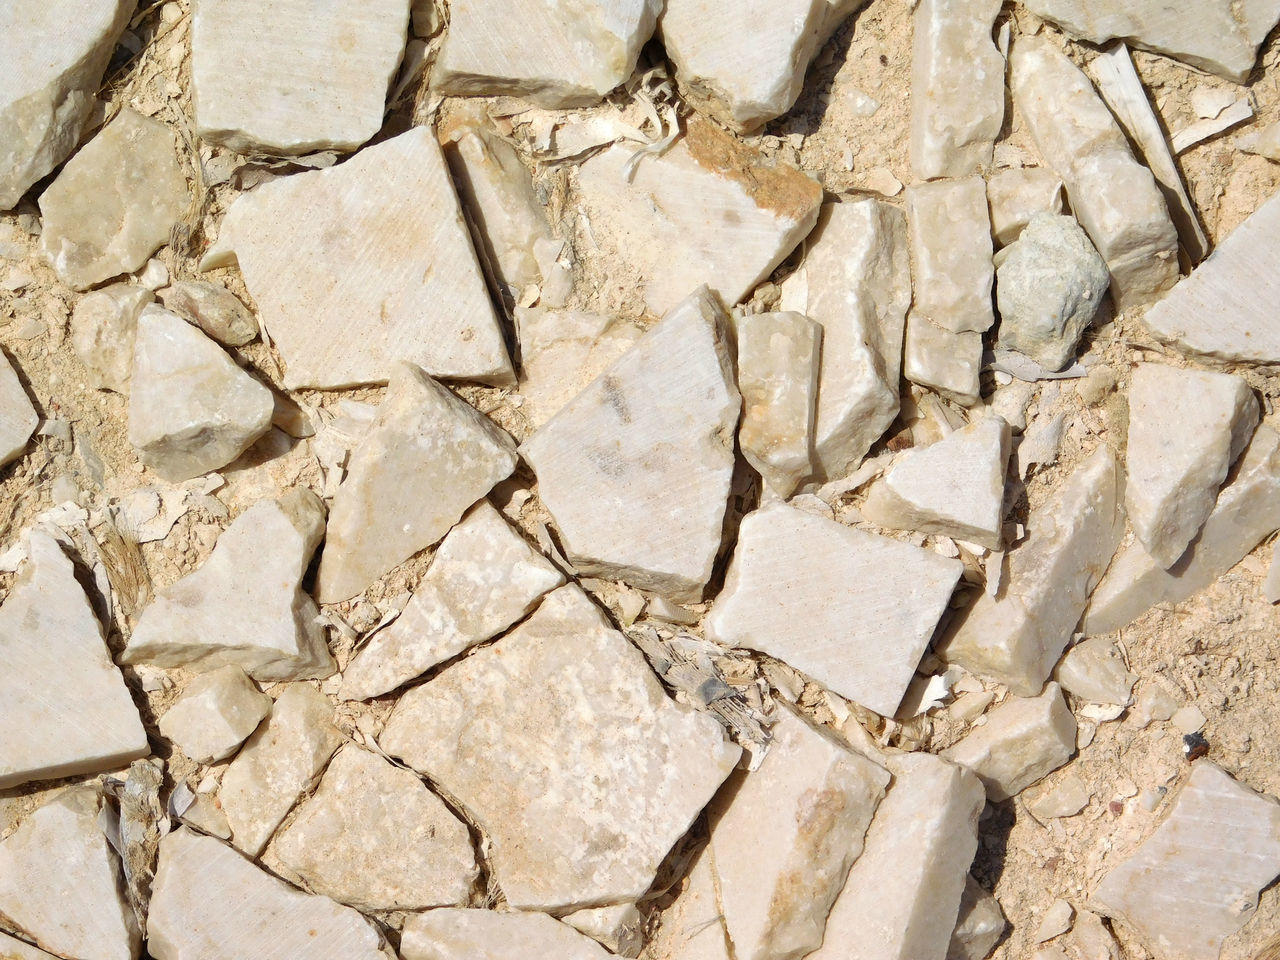 Texture of stones Ancient Backgrounds Close-up Day Full Frame Marble Nature No People Outdoors Pattern Rock - Object Stone - Object Stone Material Textured